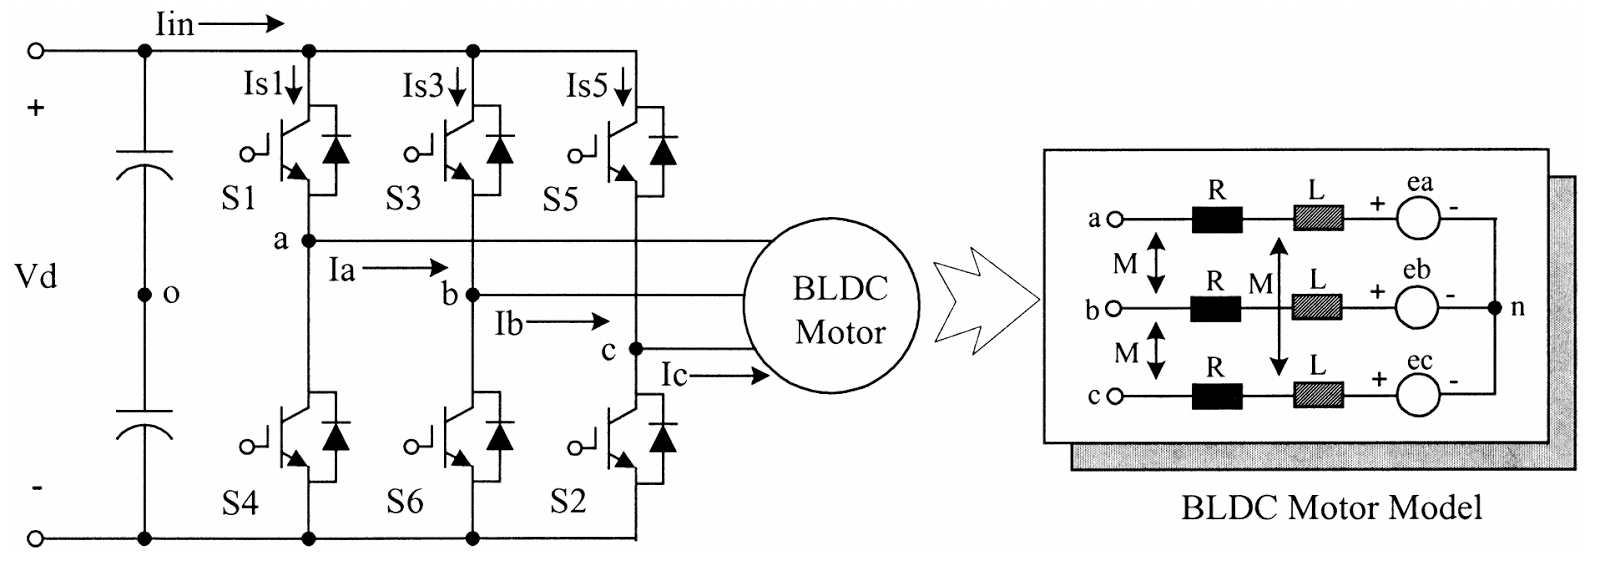 simulation of bldc motor speed pi control in simulink